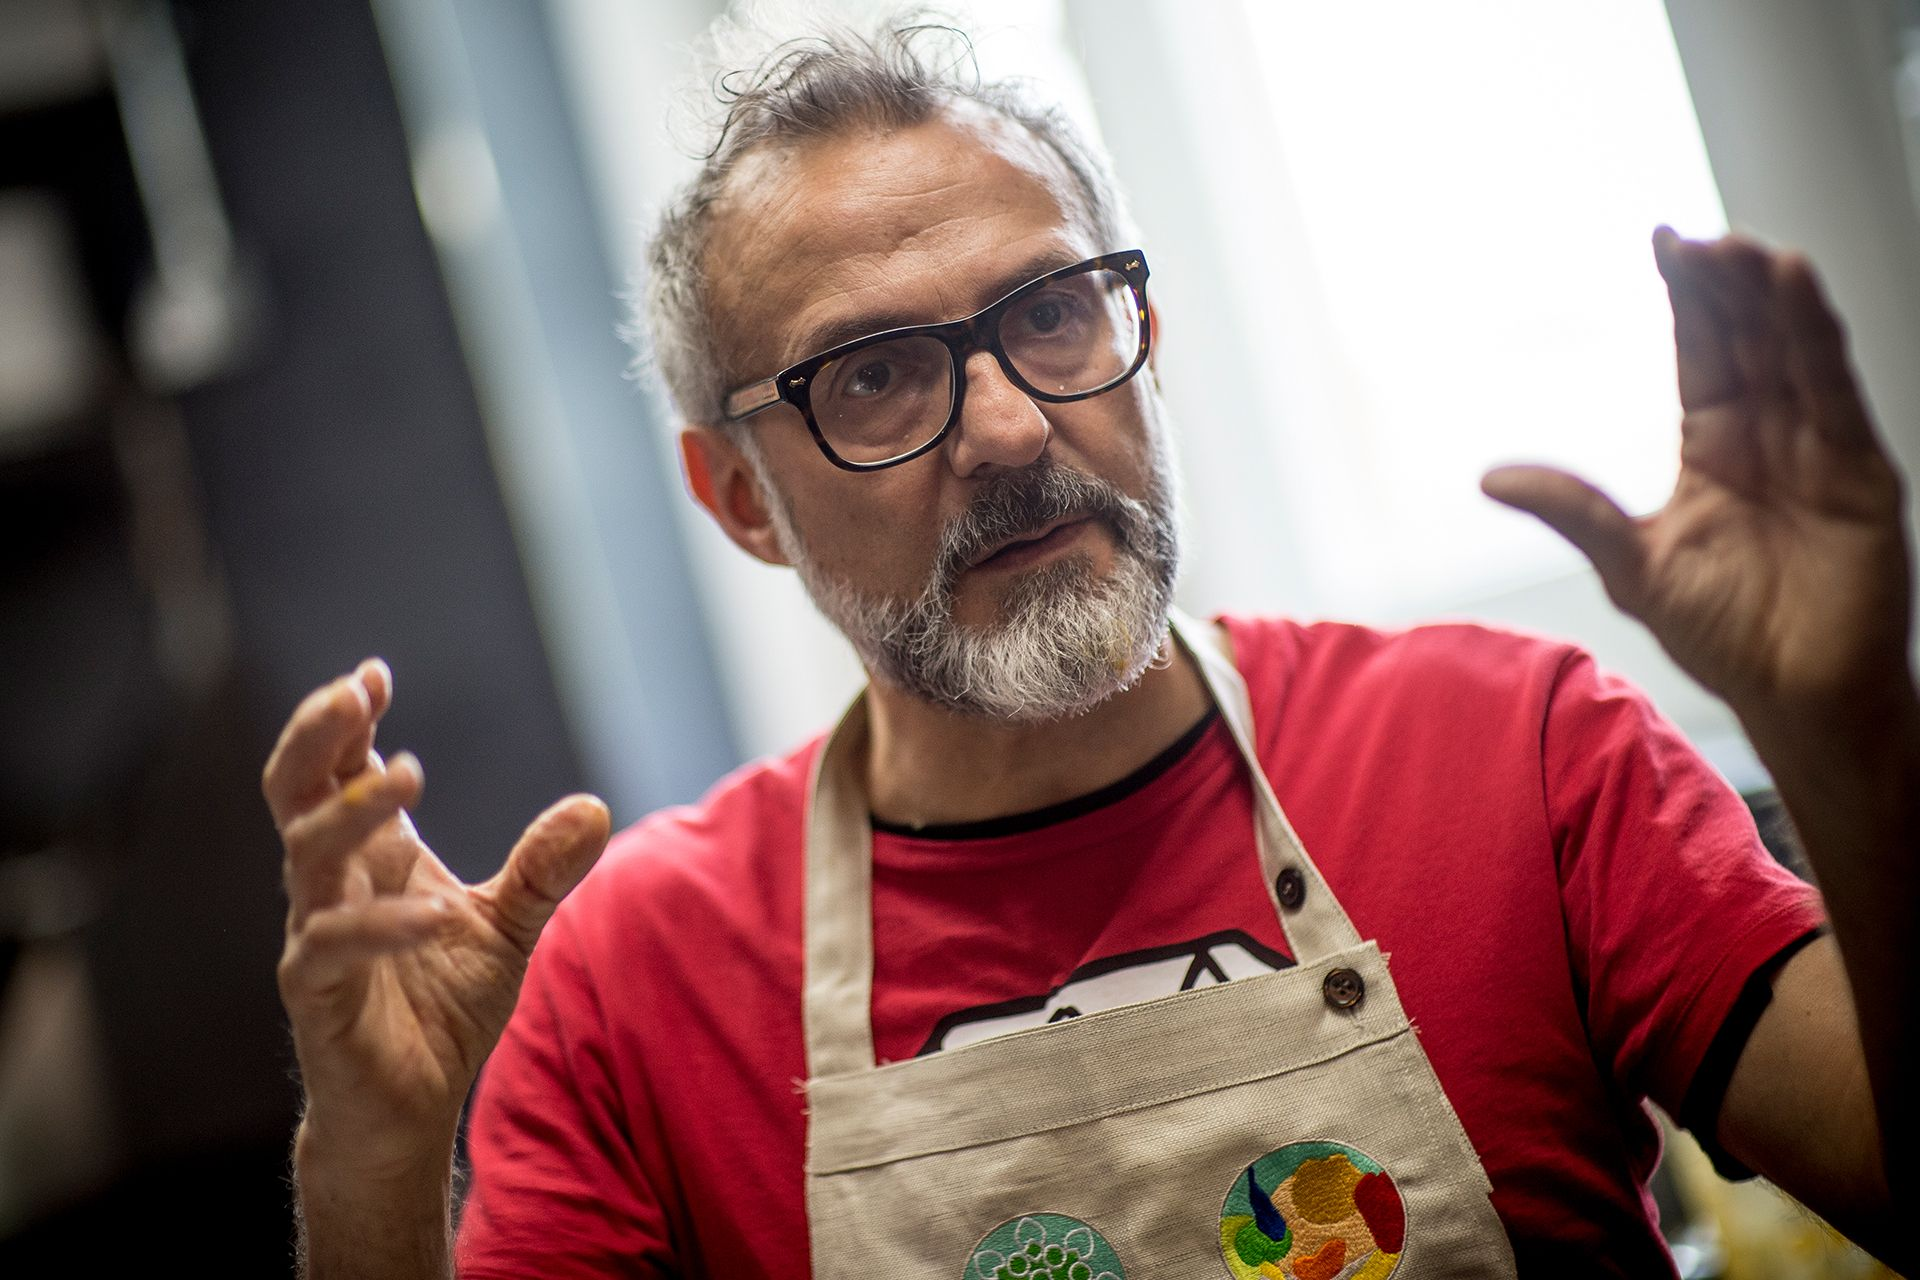 Italian chef Massimo Bottura is cooking up a new venture at an upcoming Dubai hotel